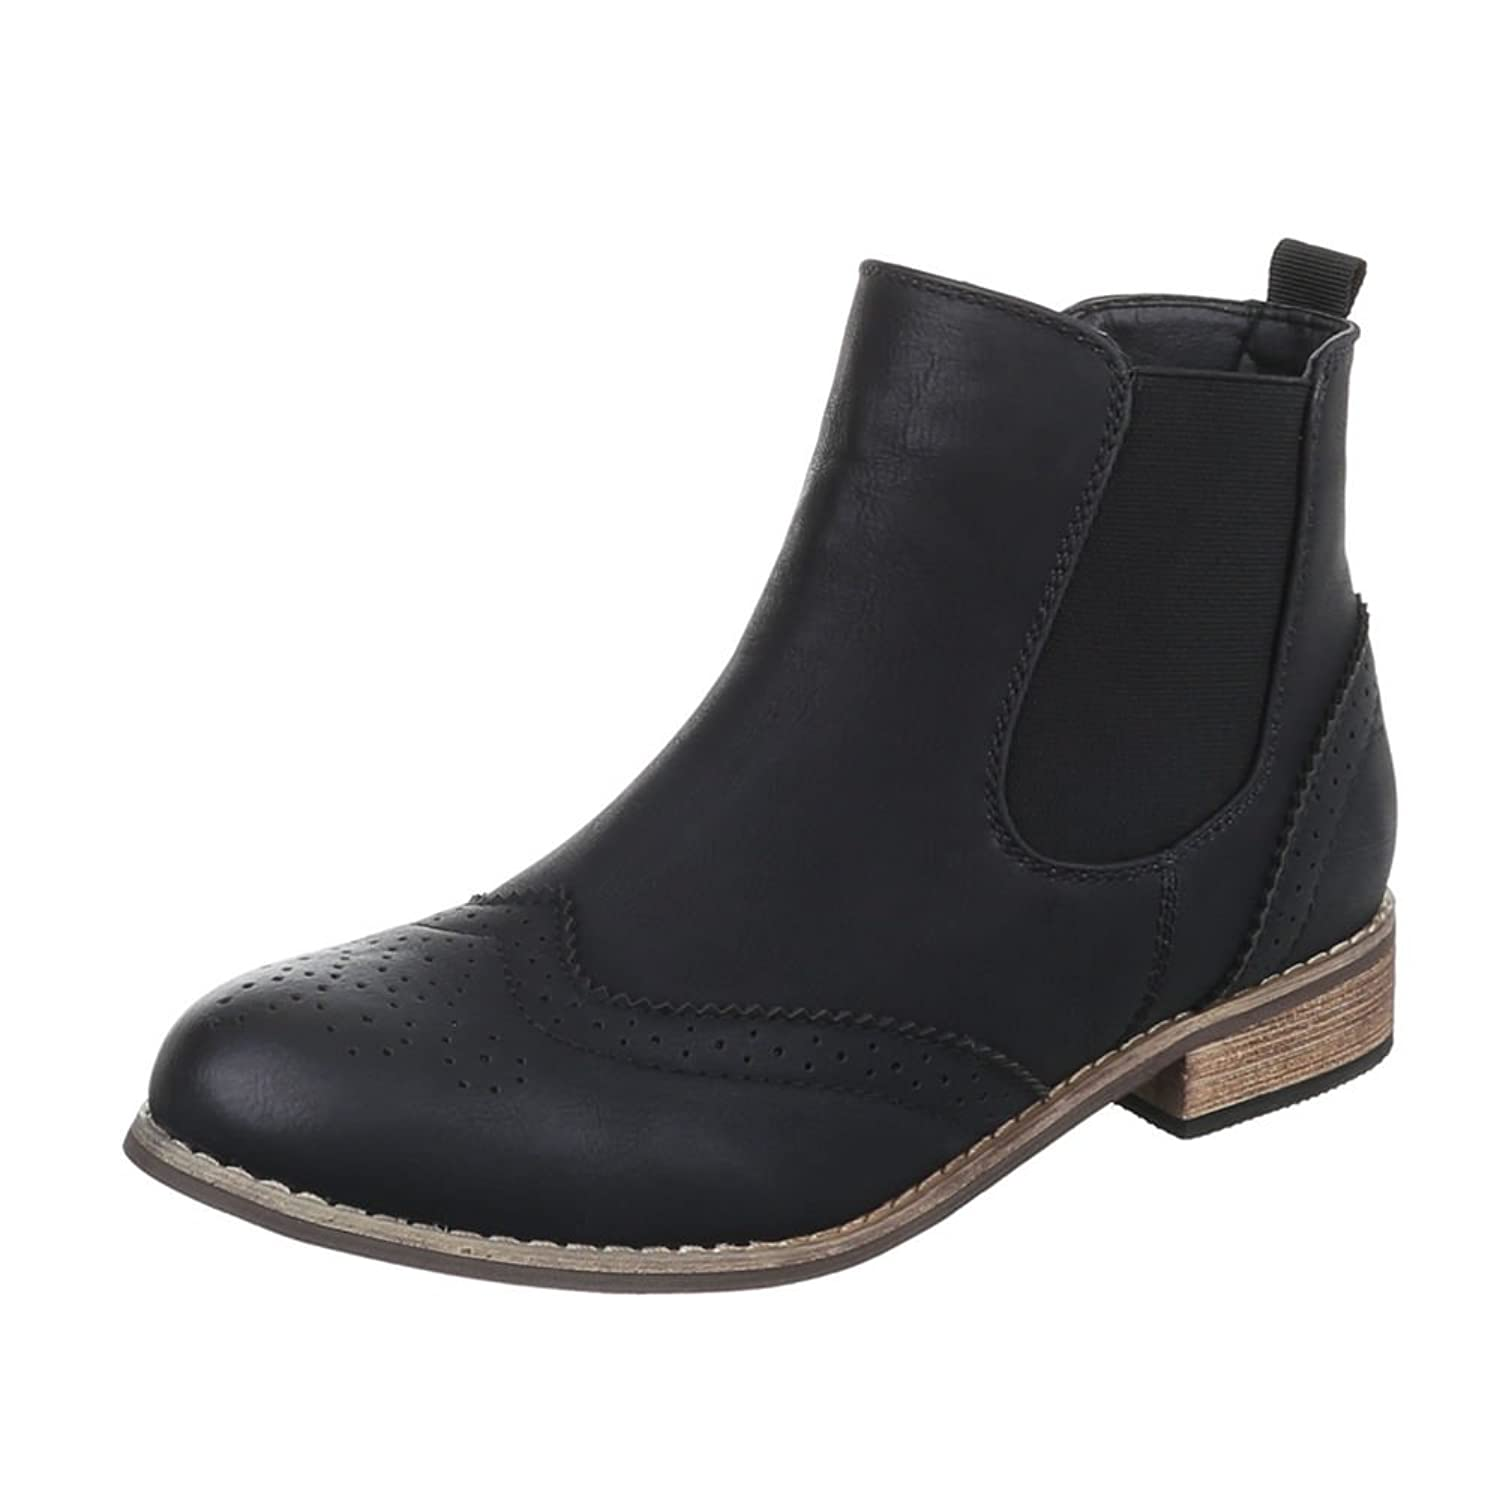 80ea6cc95eb Ital-Design - Botas Chelsea Mujer Outlet - www.bkishop.top